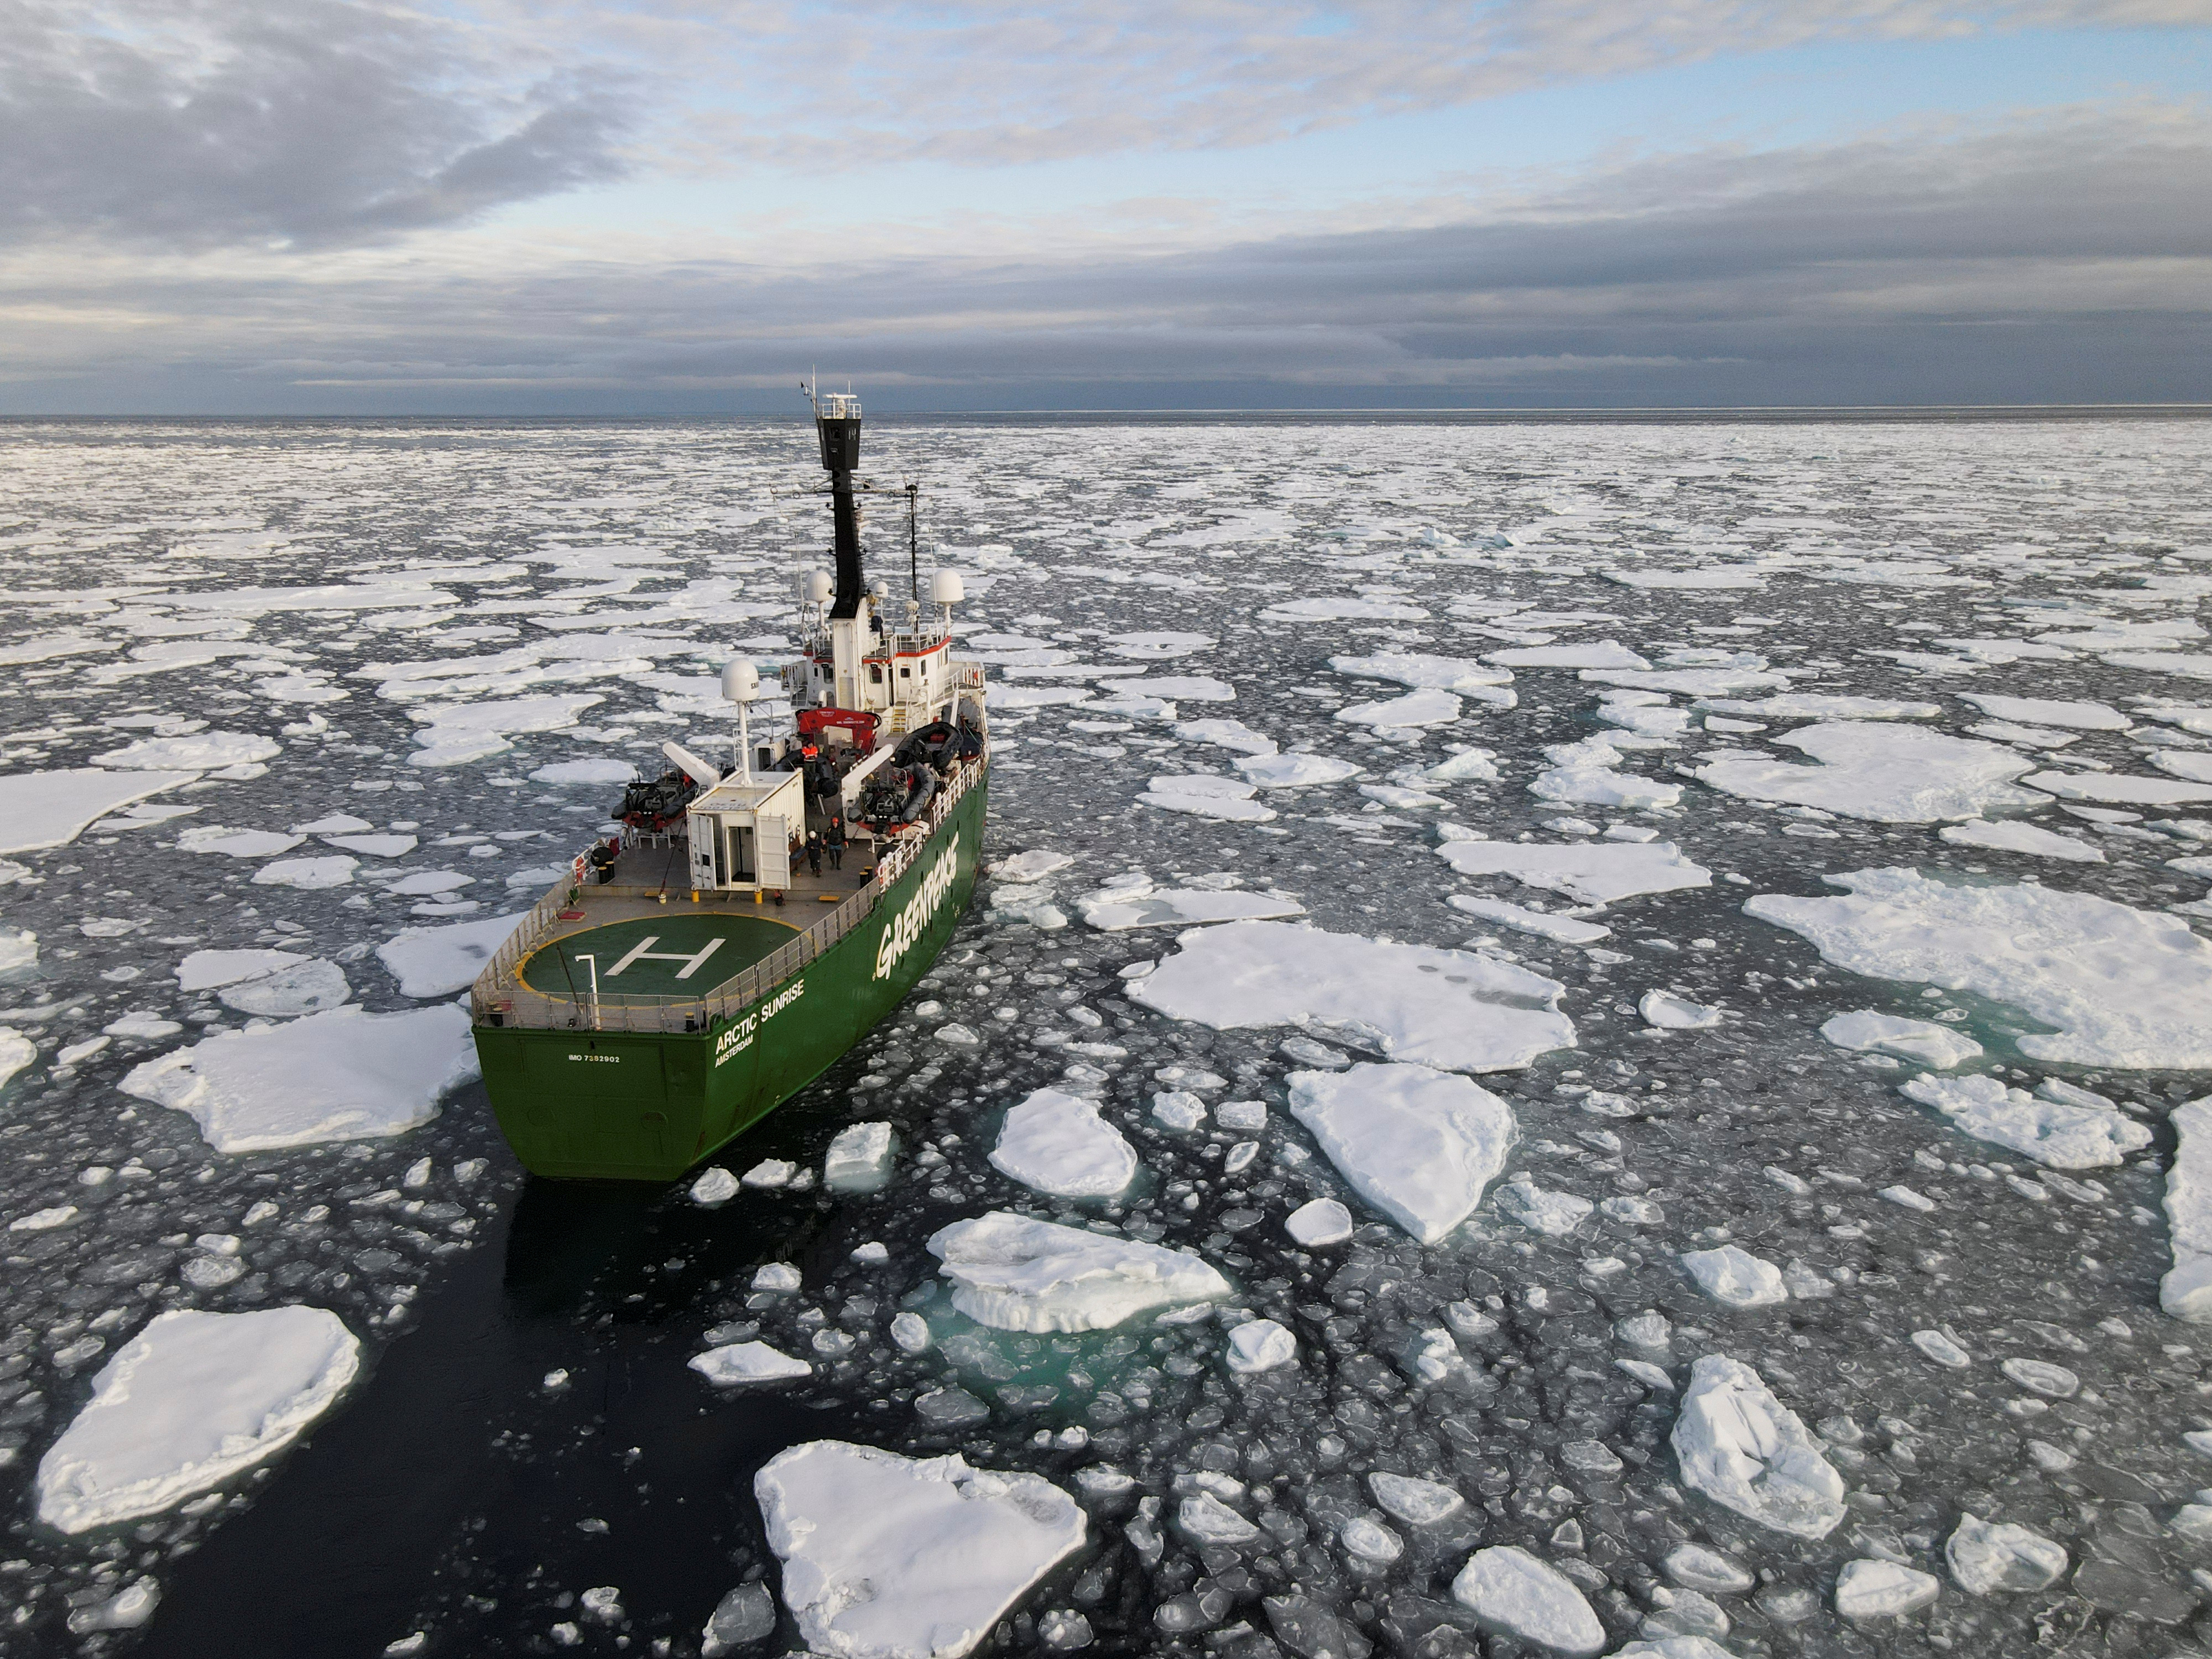 Greenpeace's Arctic Sunrise ship navigates through floating ice in the Arctic Ocean, September 15, 2020. Picture taken September 15, 2020. Picture taken with a drone. REUTERS/Natalie Thomas